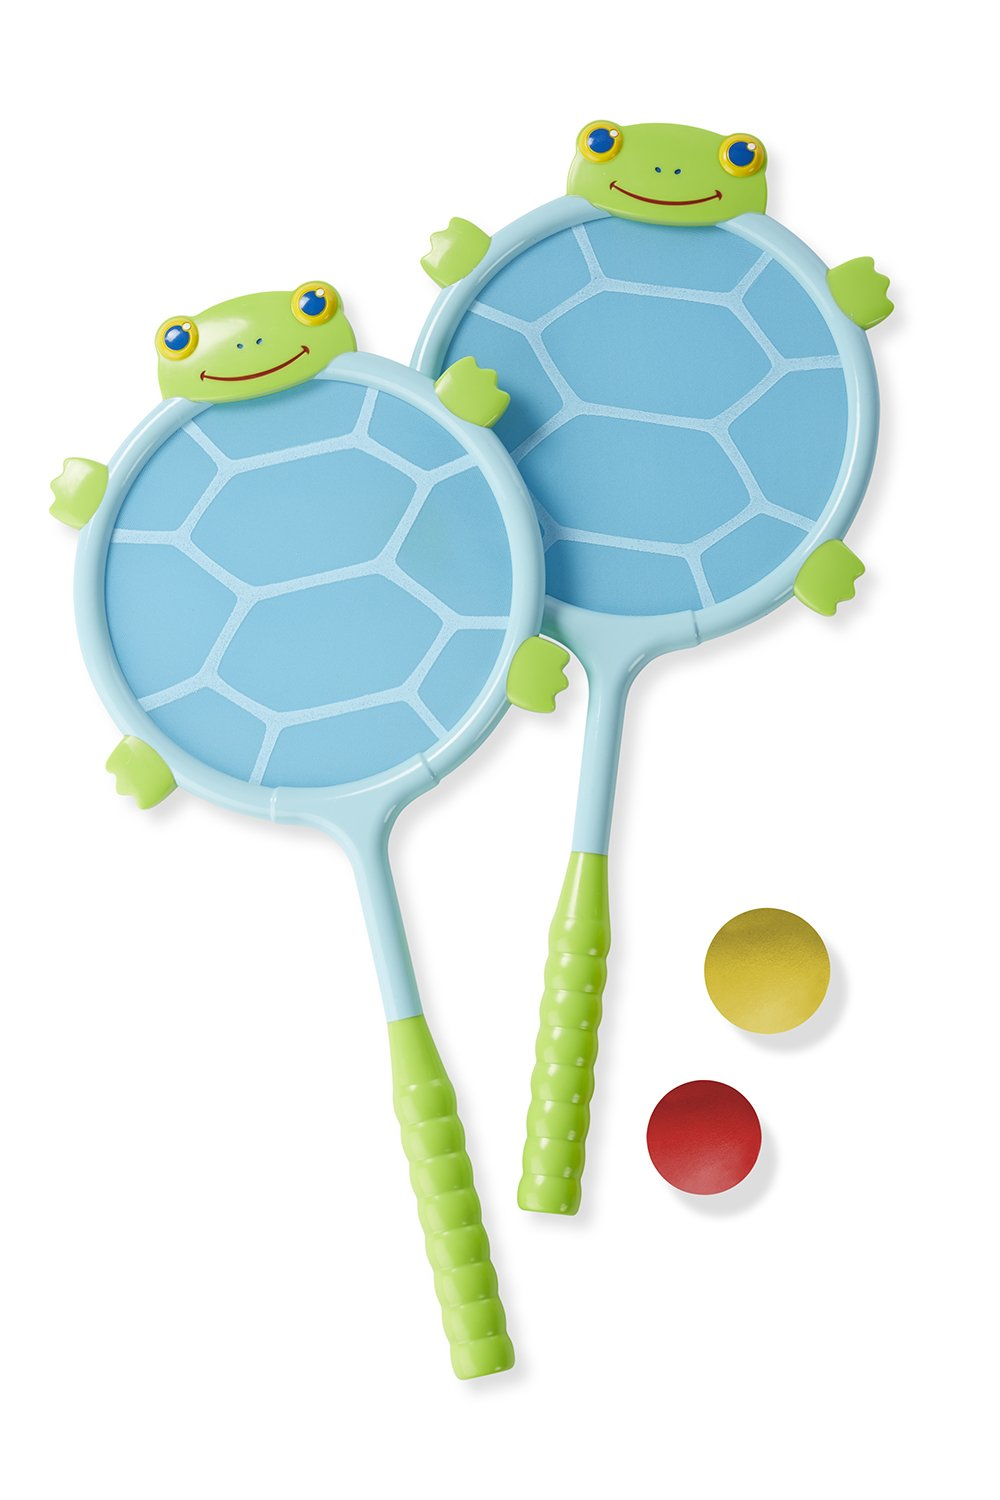 Melissa & Doug Sunny Patch Dilly Dally Racquet and Ball Game Set